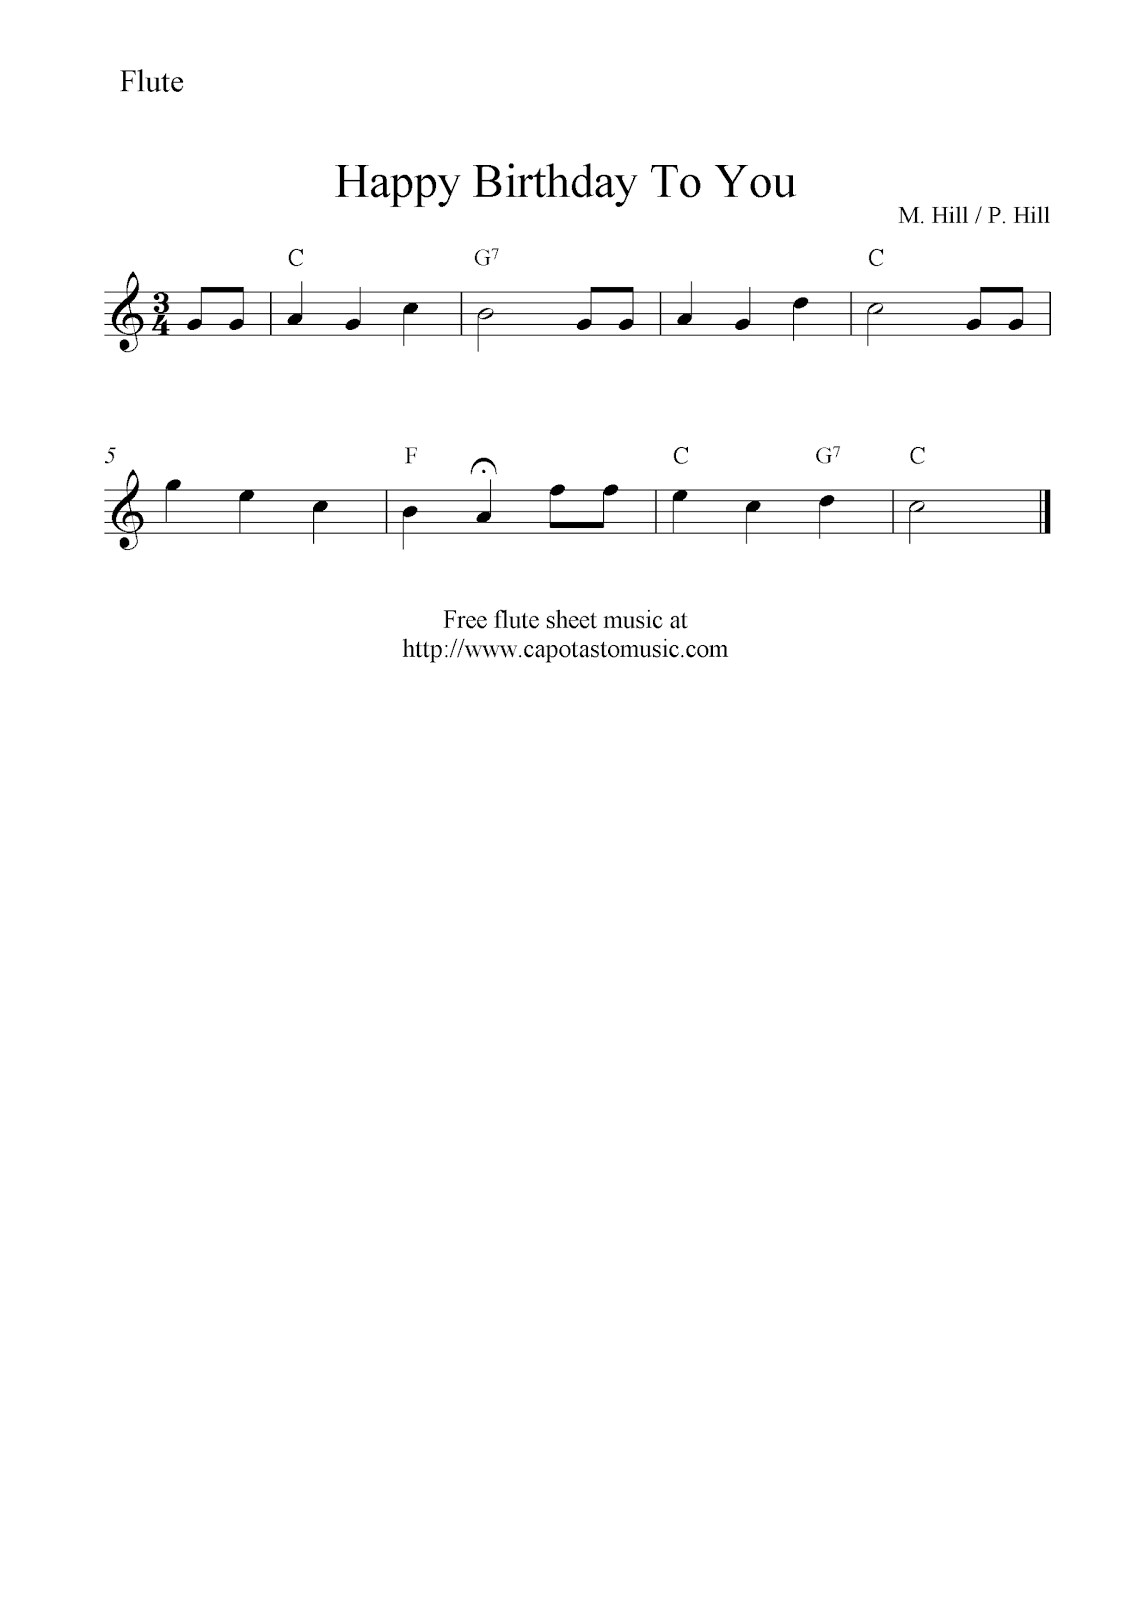 Feel free to download and print out a high quality pdf score with free sheet music scores happy birthday to you free flute sheet music notesif this is flute sheet musicey got a lot of the notes wrong hexwebz Gallery